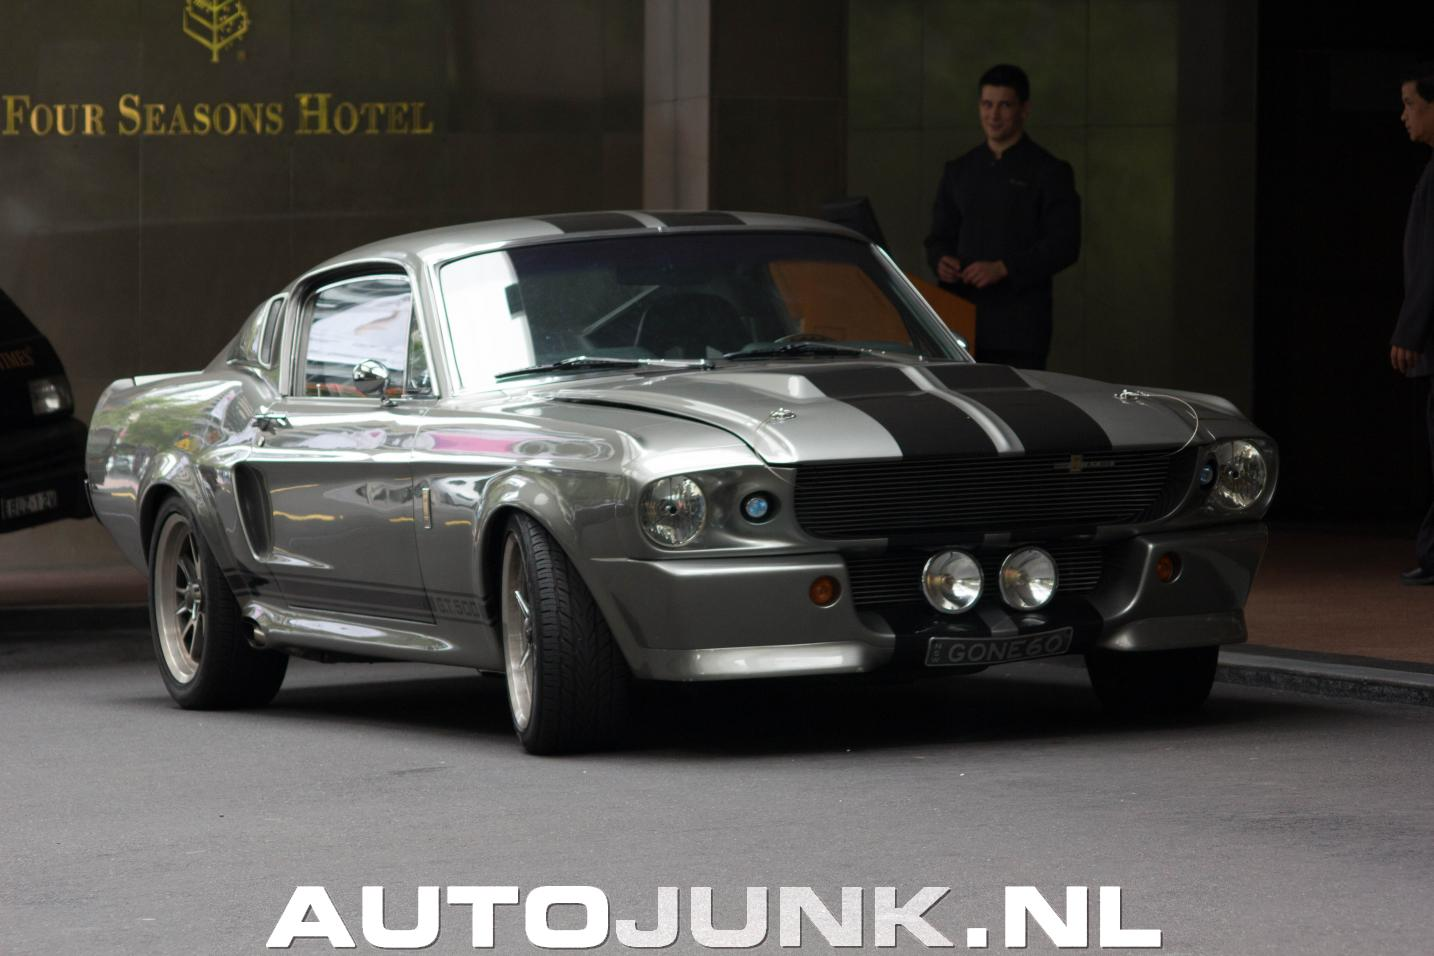 mustang shelby gt500 eleanor wallpaper 1967 ford mustang shelby gt500 - 1967 Ford Mustang Shelby Gt500